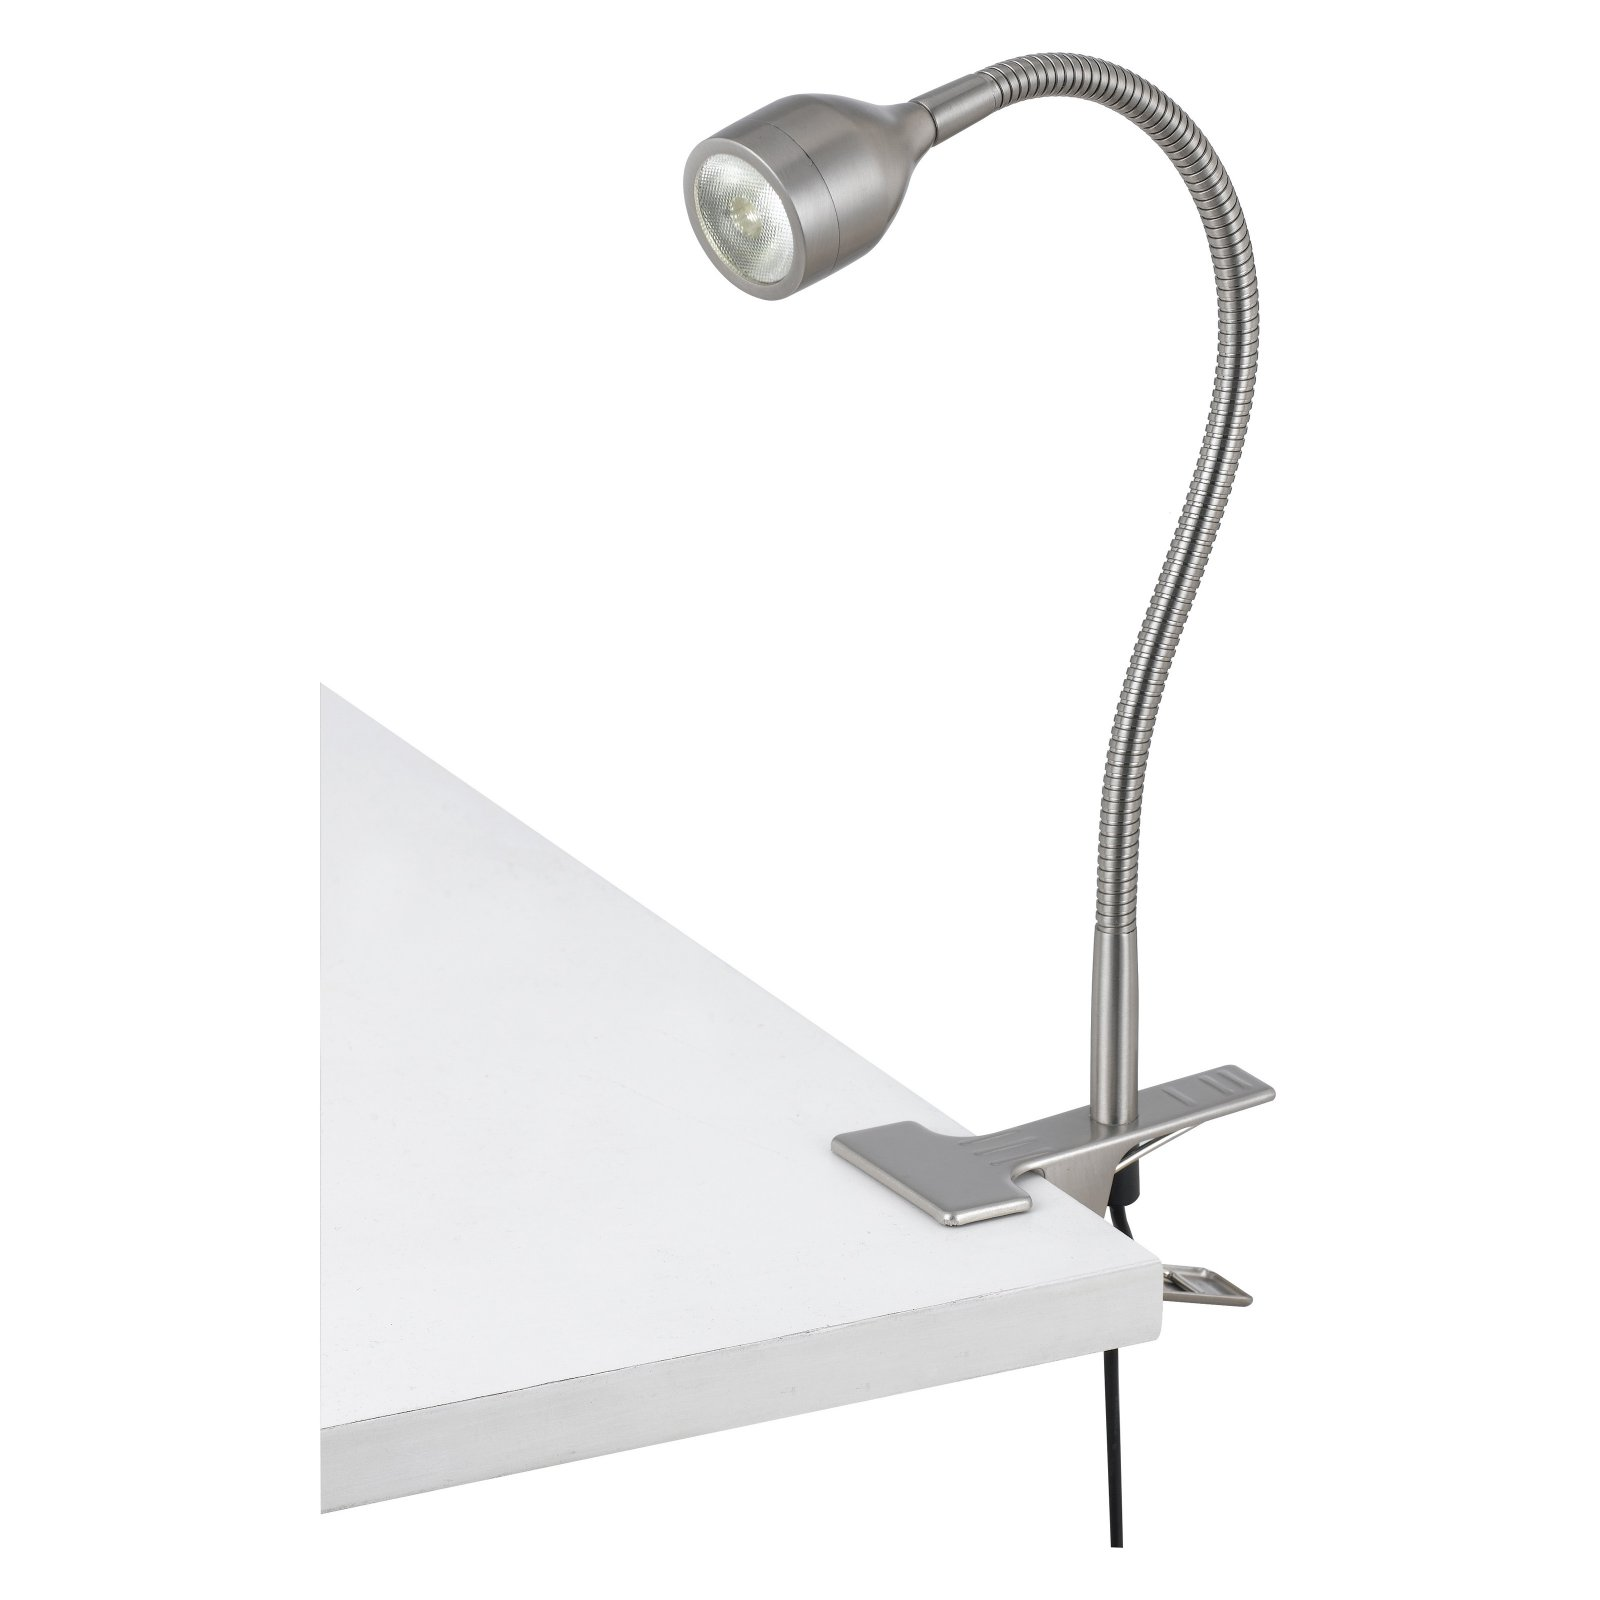 Cal Lighting Gooseneck BO-2603 Clamp-on Desk Lamp by CAL Lighting